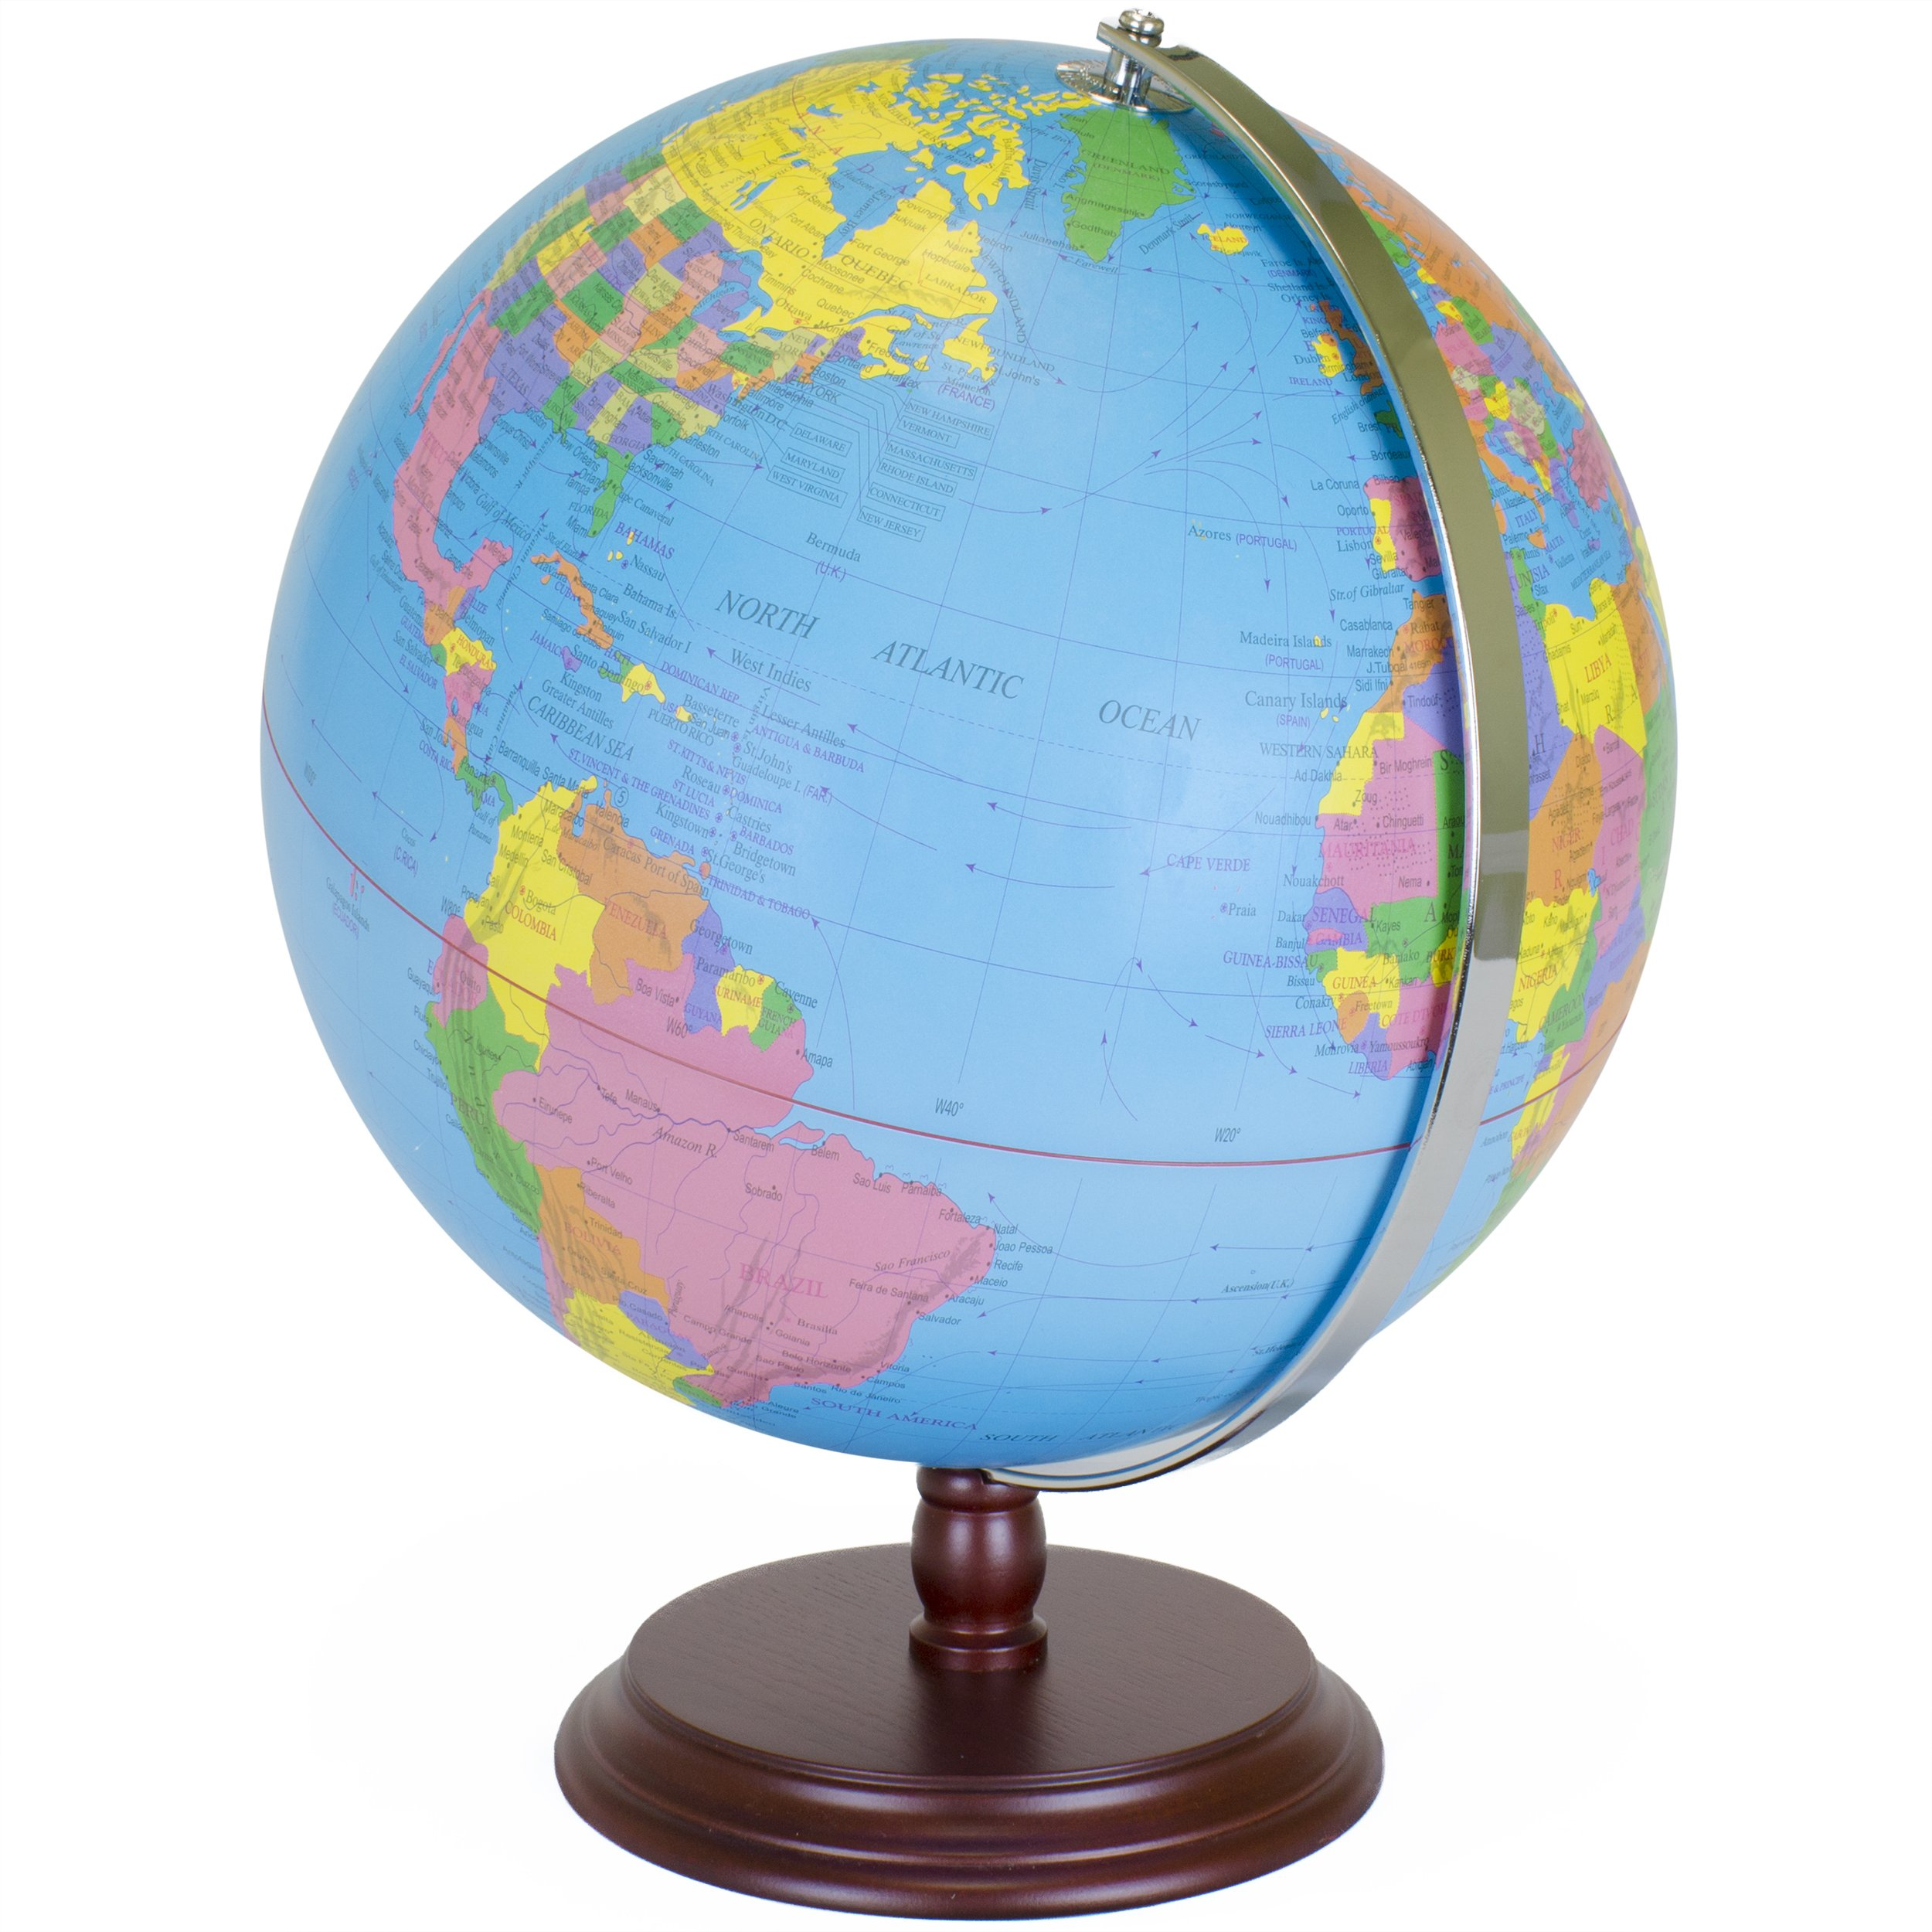 World Globe | 12 Inch Desktop Atlas with Antique Stand | Earth with Political Maps + Blue Oceans for Educational Geography | Classic Globo Vintage Spinning Perfect for Geographical National Kids Toys